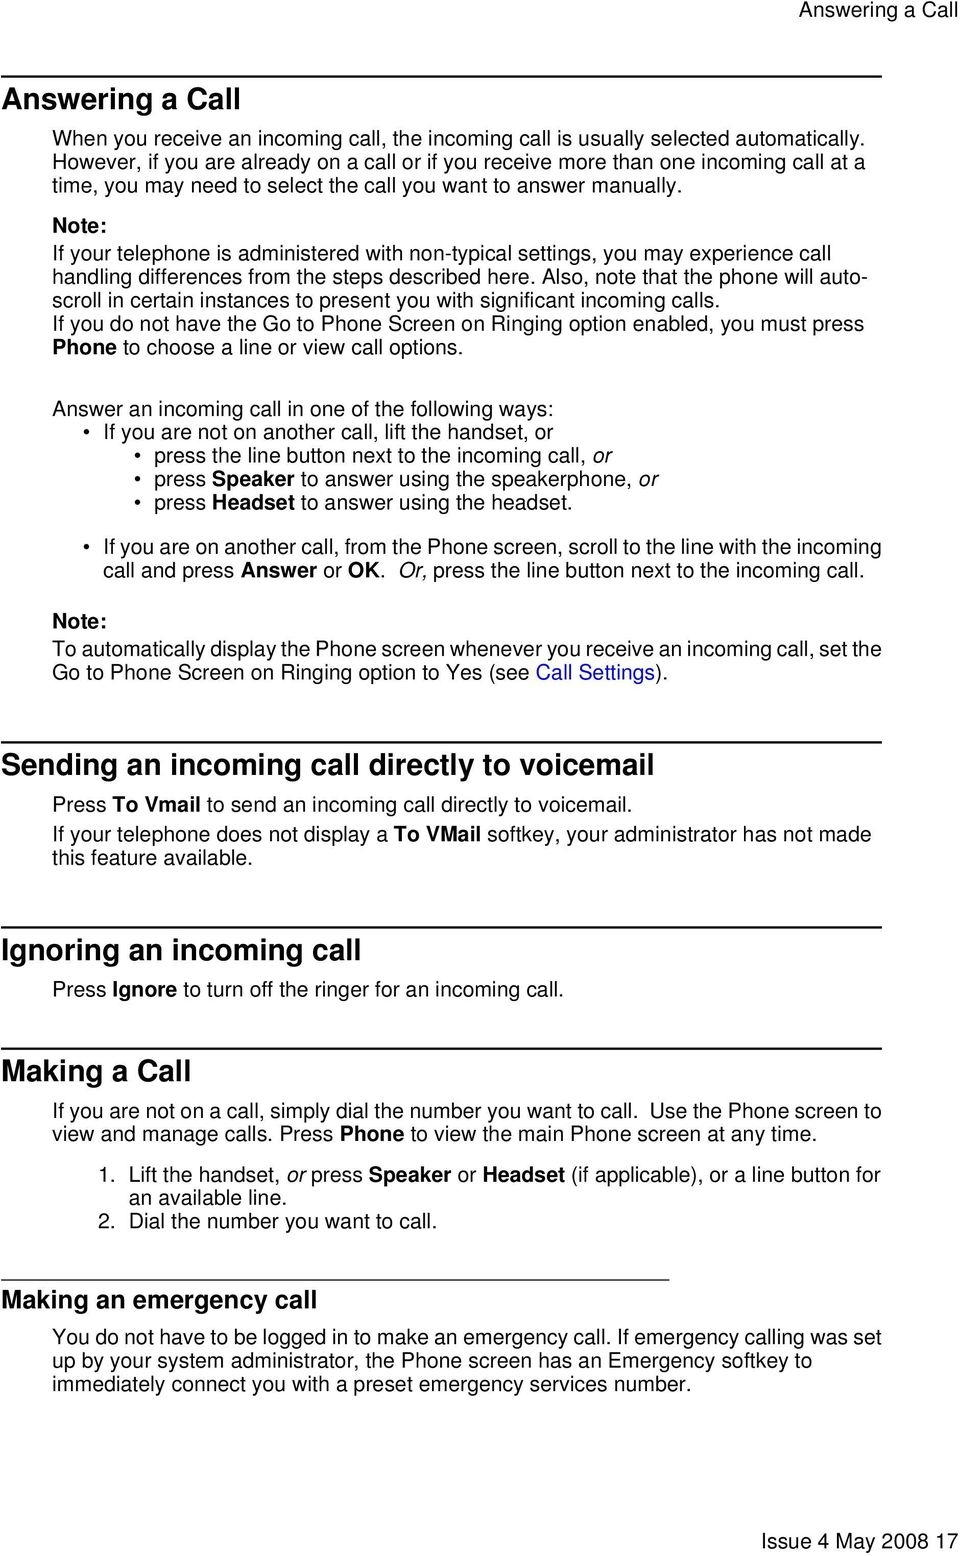 If your telephone is administered with non-typical settings, you may experience call handling differences from the steps described here.